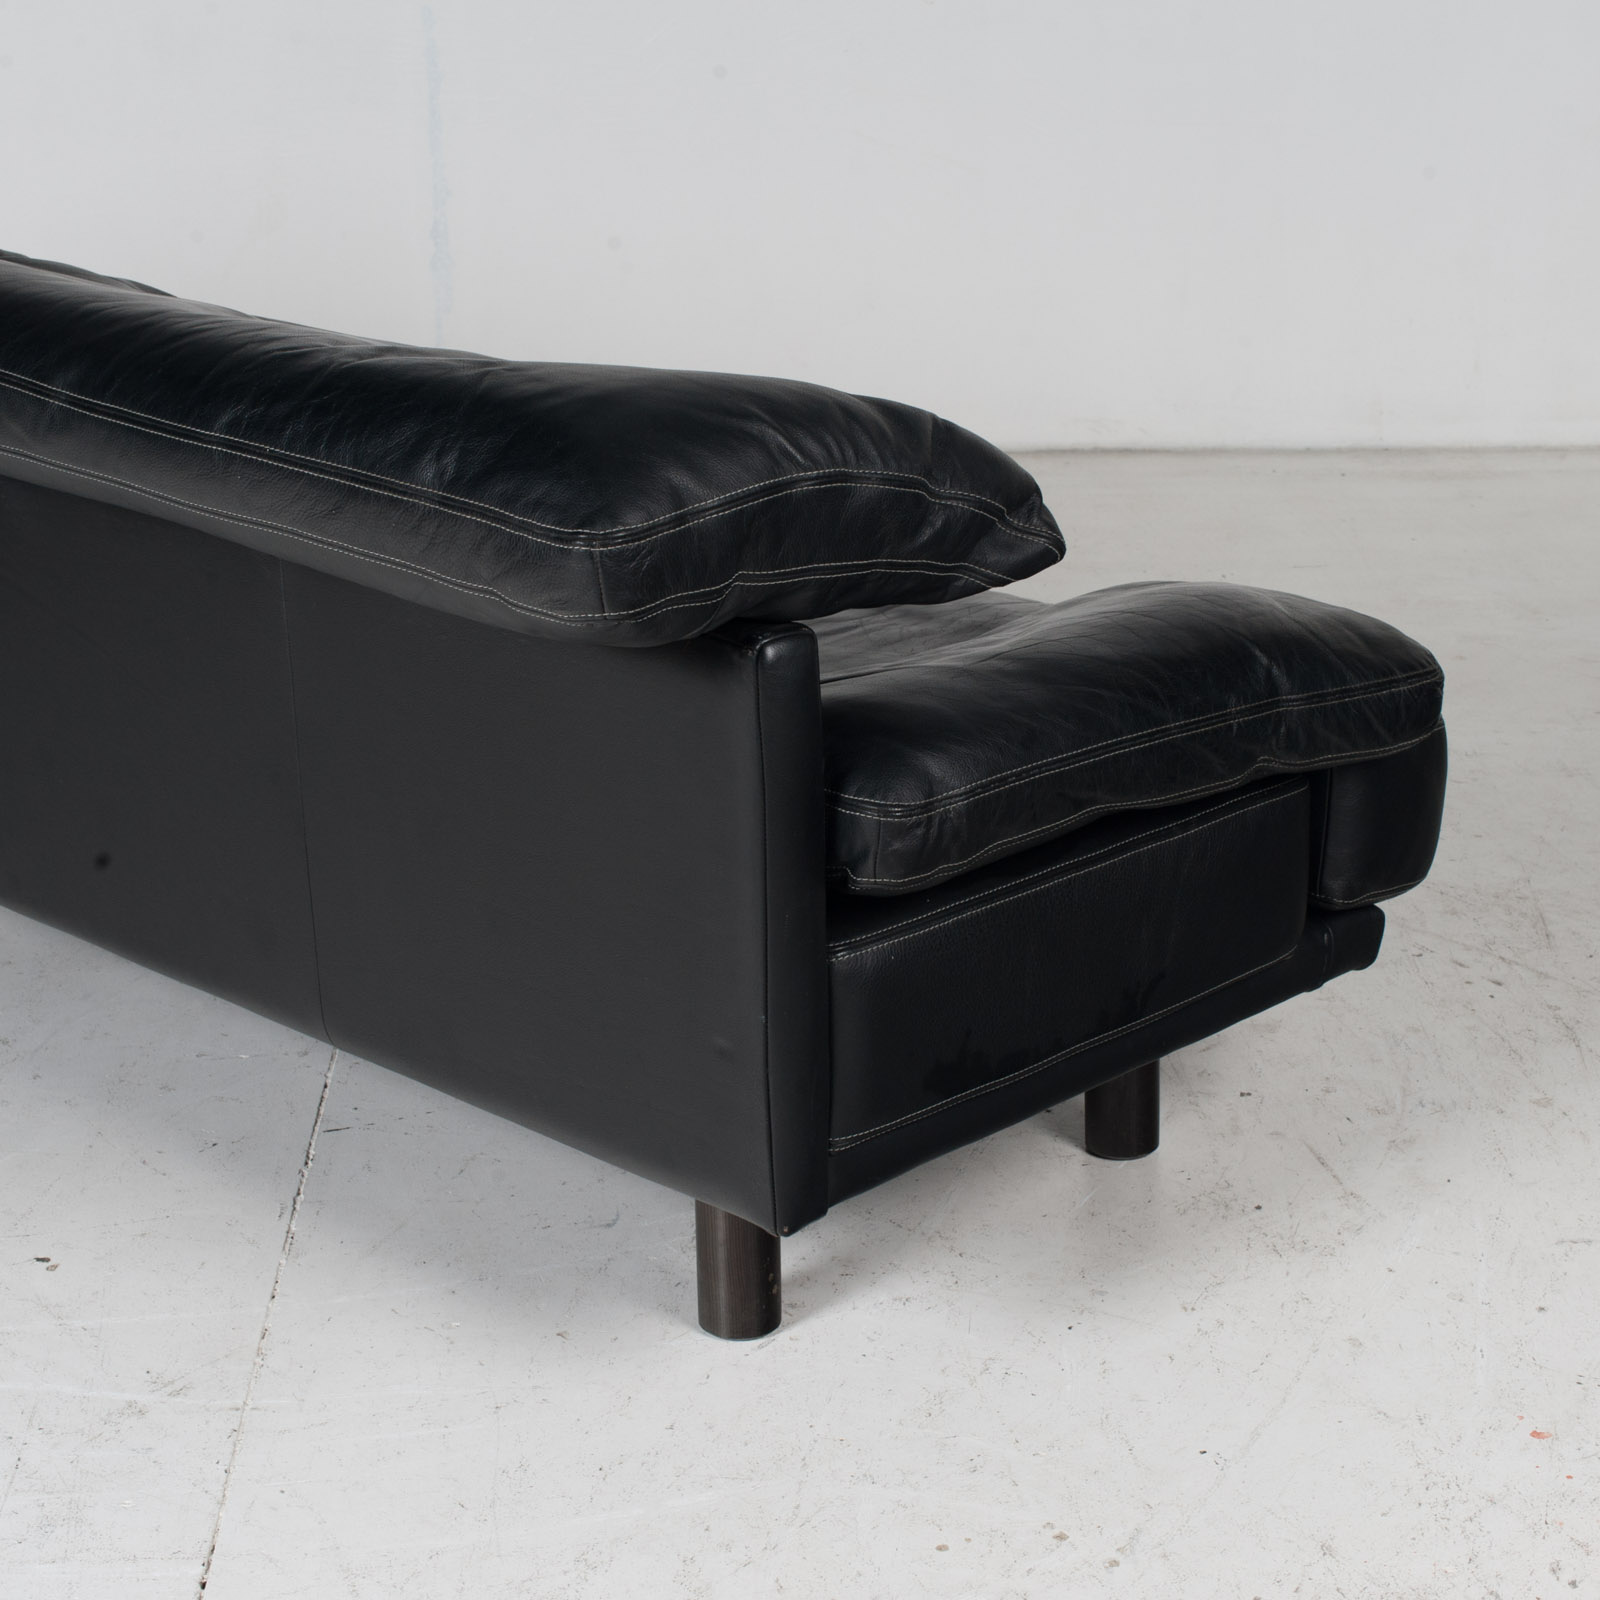 2 Seat Sofa In The Style Of Alanda By Paolo Piva For B&b Italia In Black Leather, 1980s, Italy It 14